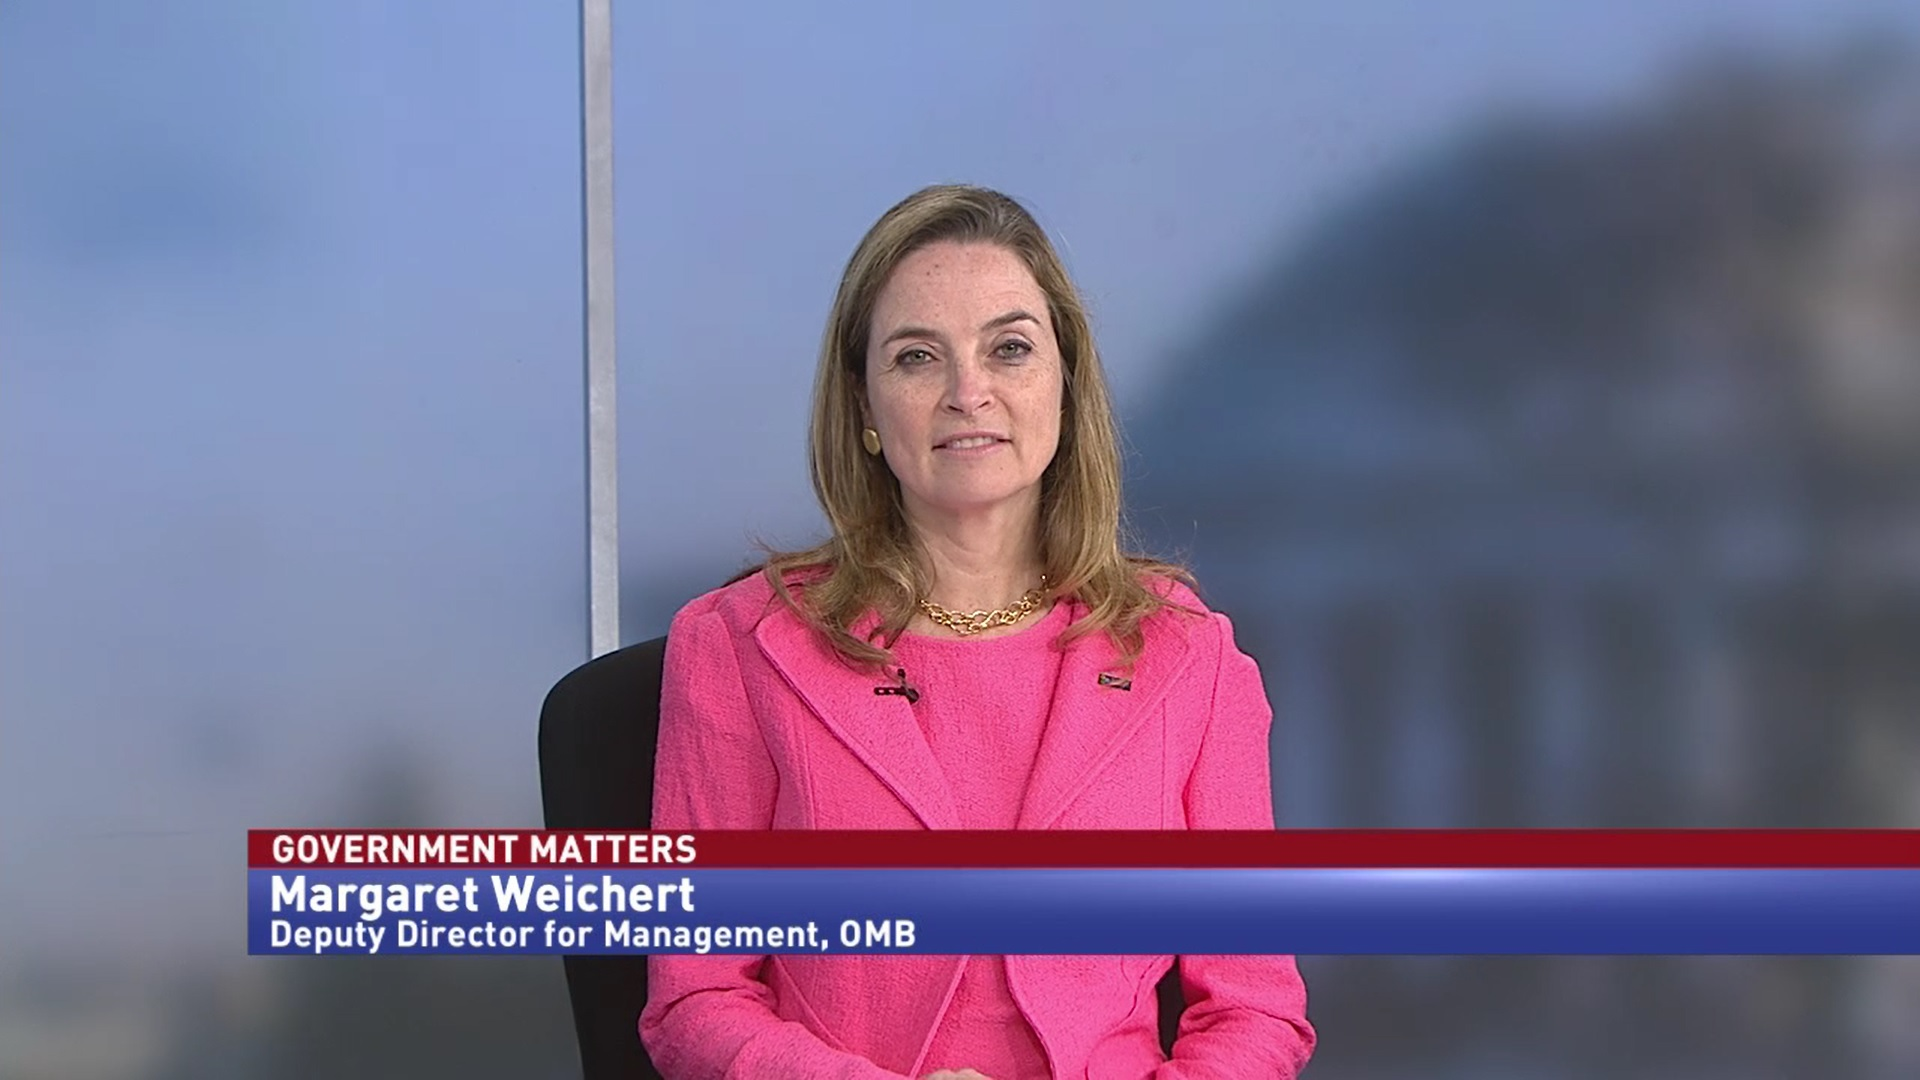 Exclusive Sit-Down with OMB's Margaret Weichert